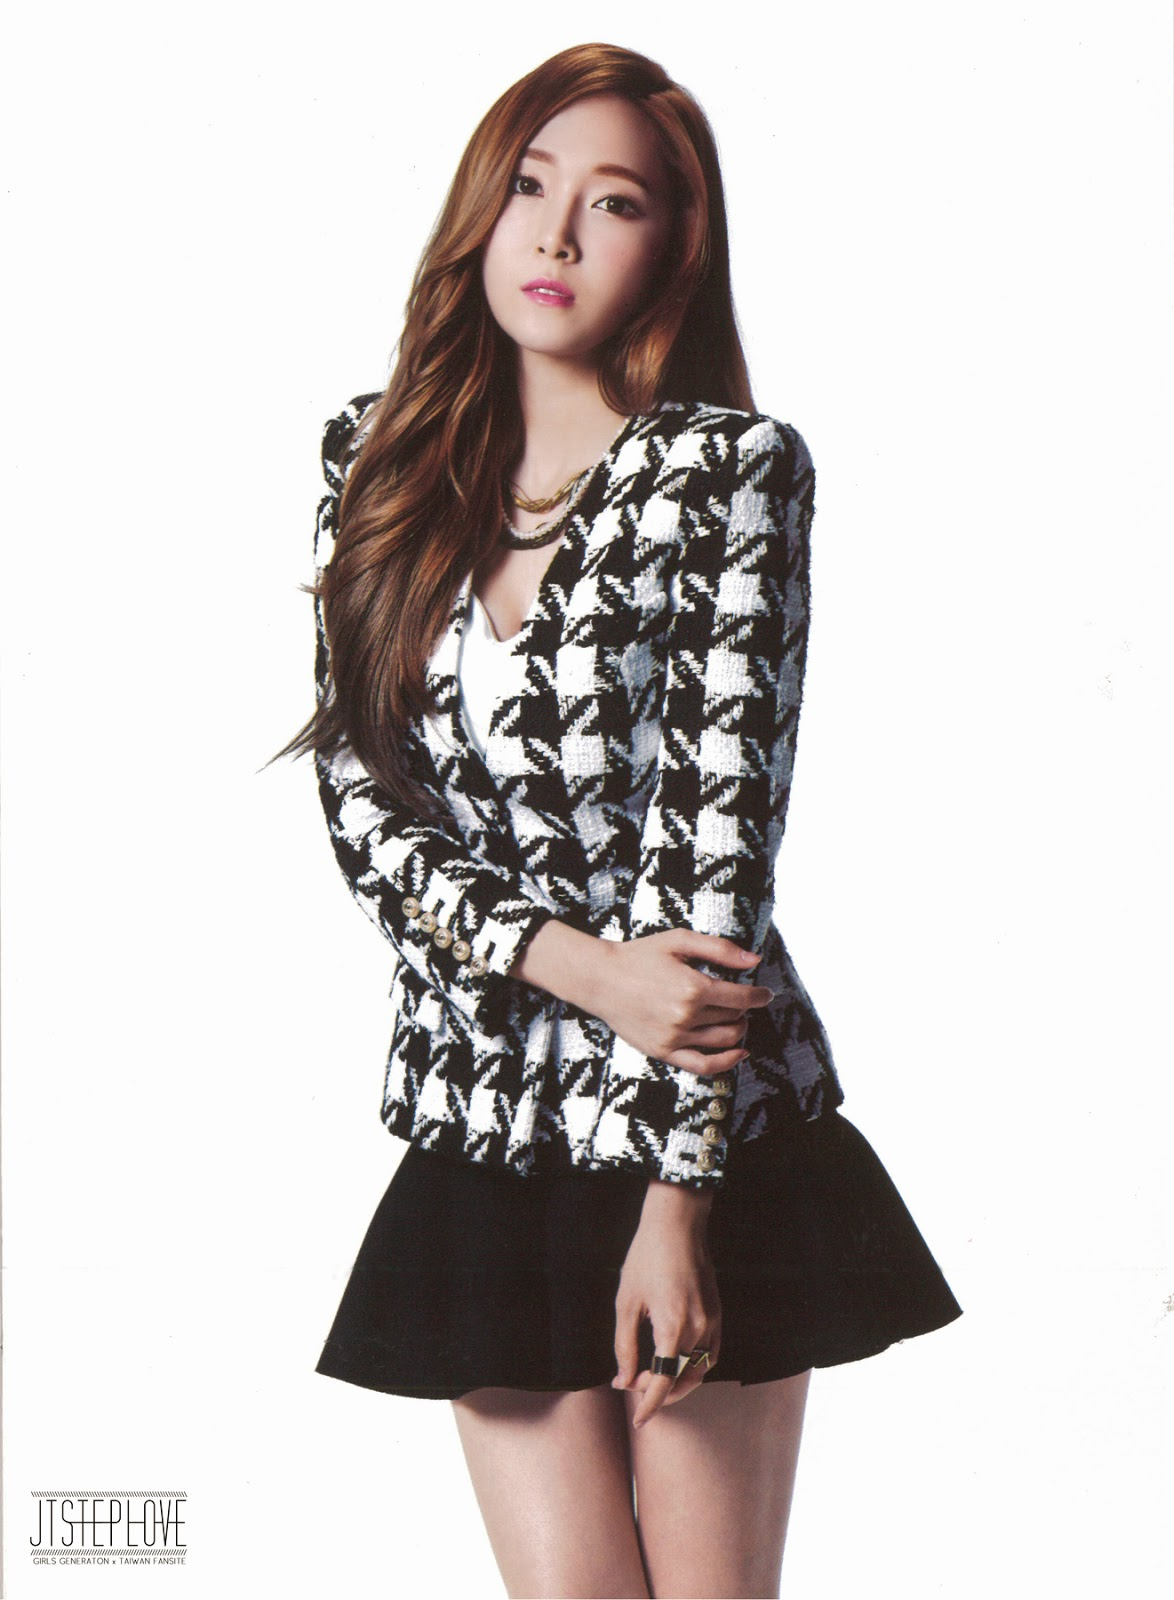 snsd the best album jessica